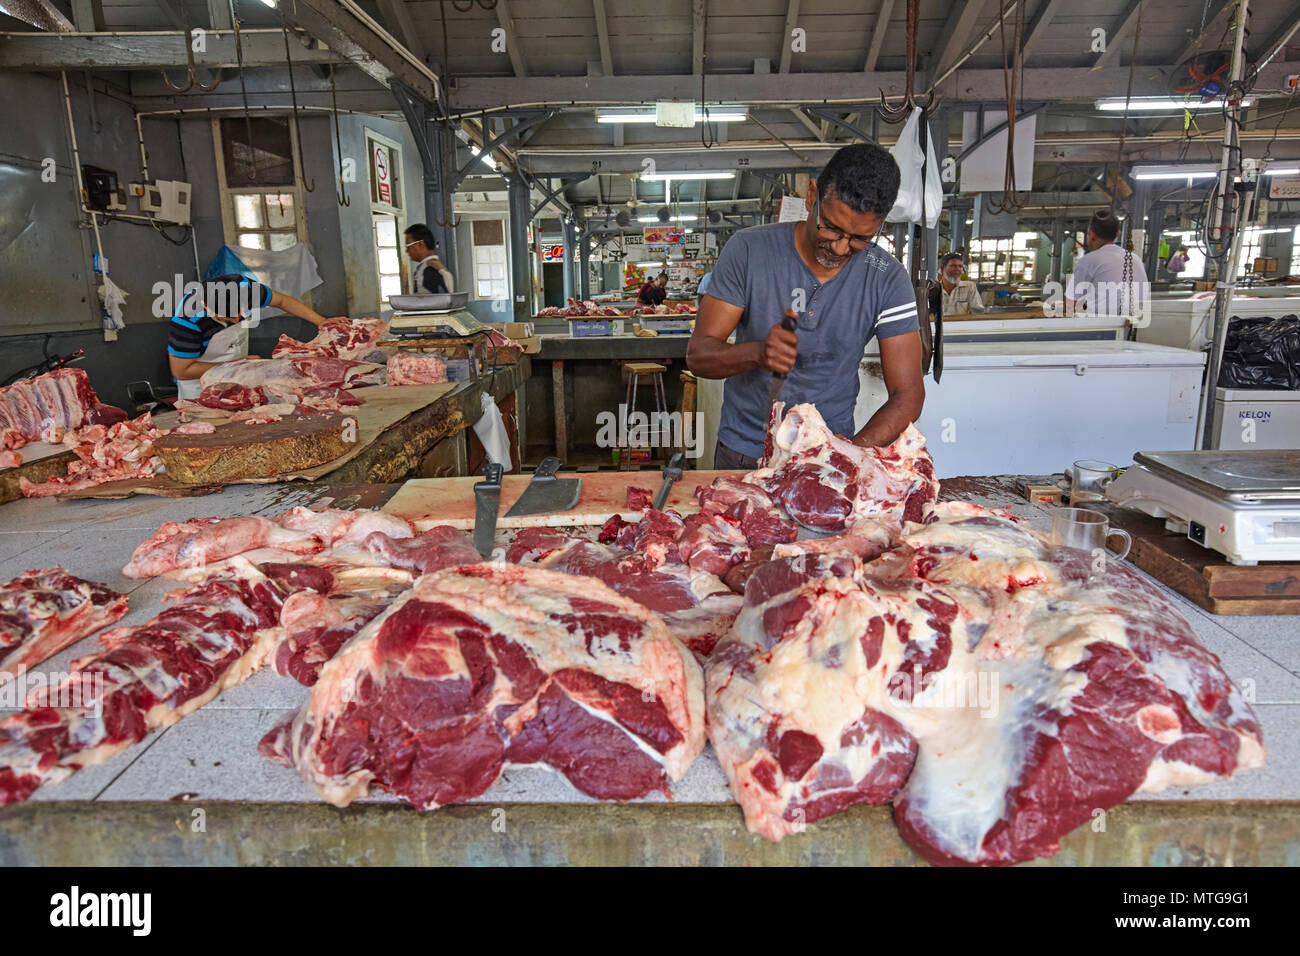 The Central Market (Bazaar) in Port Louis, Mauritius Stock Photo